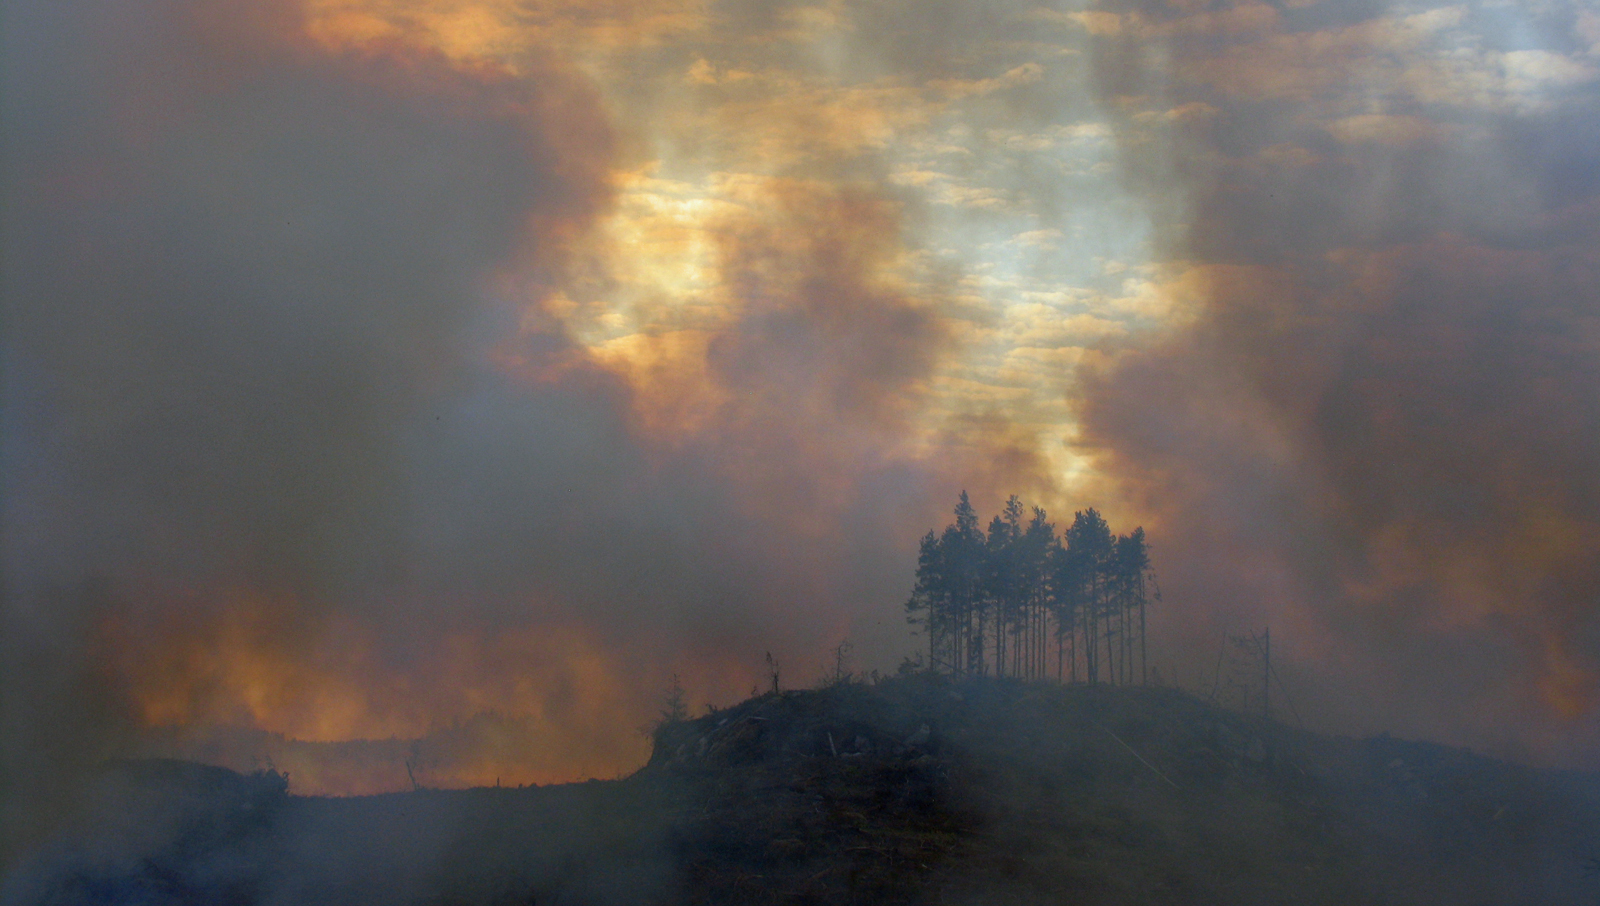 Every year, fewer than one thousand of the 26 million forest hectares in Finland burn down in wildfires. Photo: Henrik Lindberg